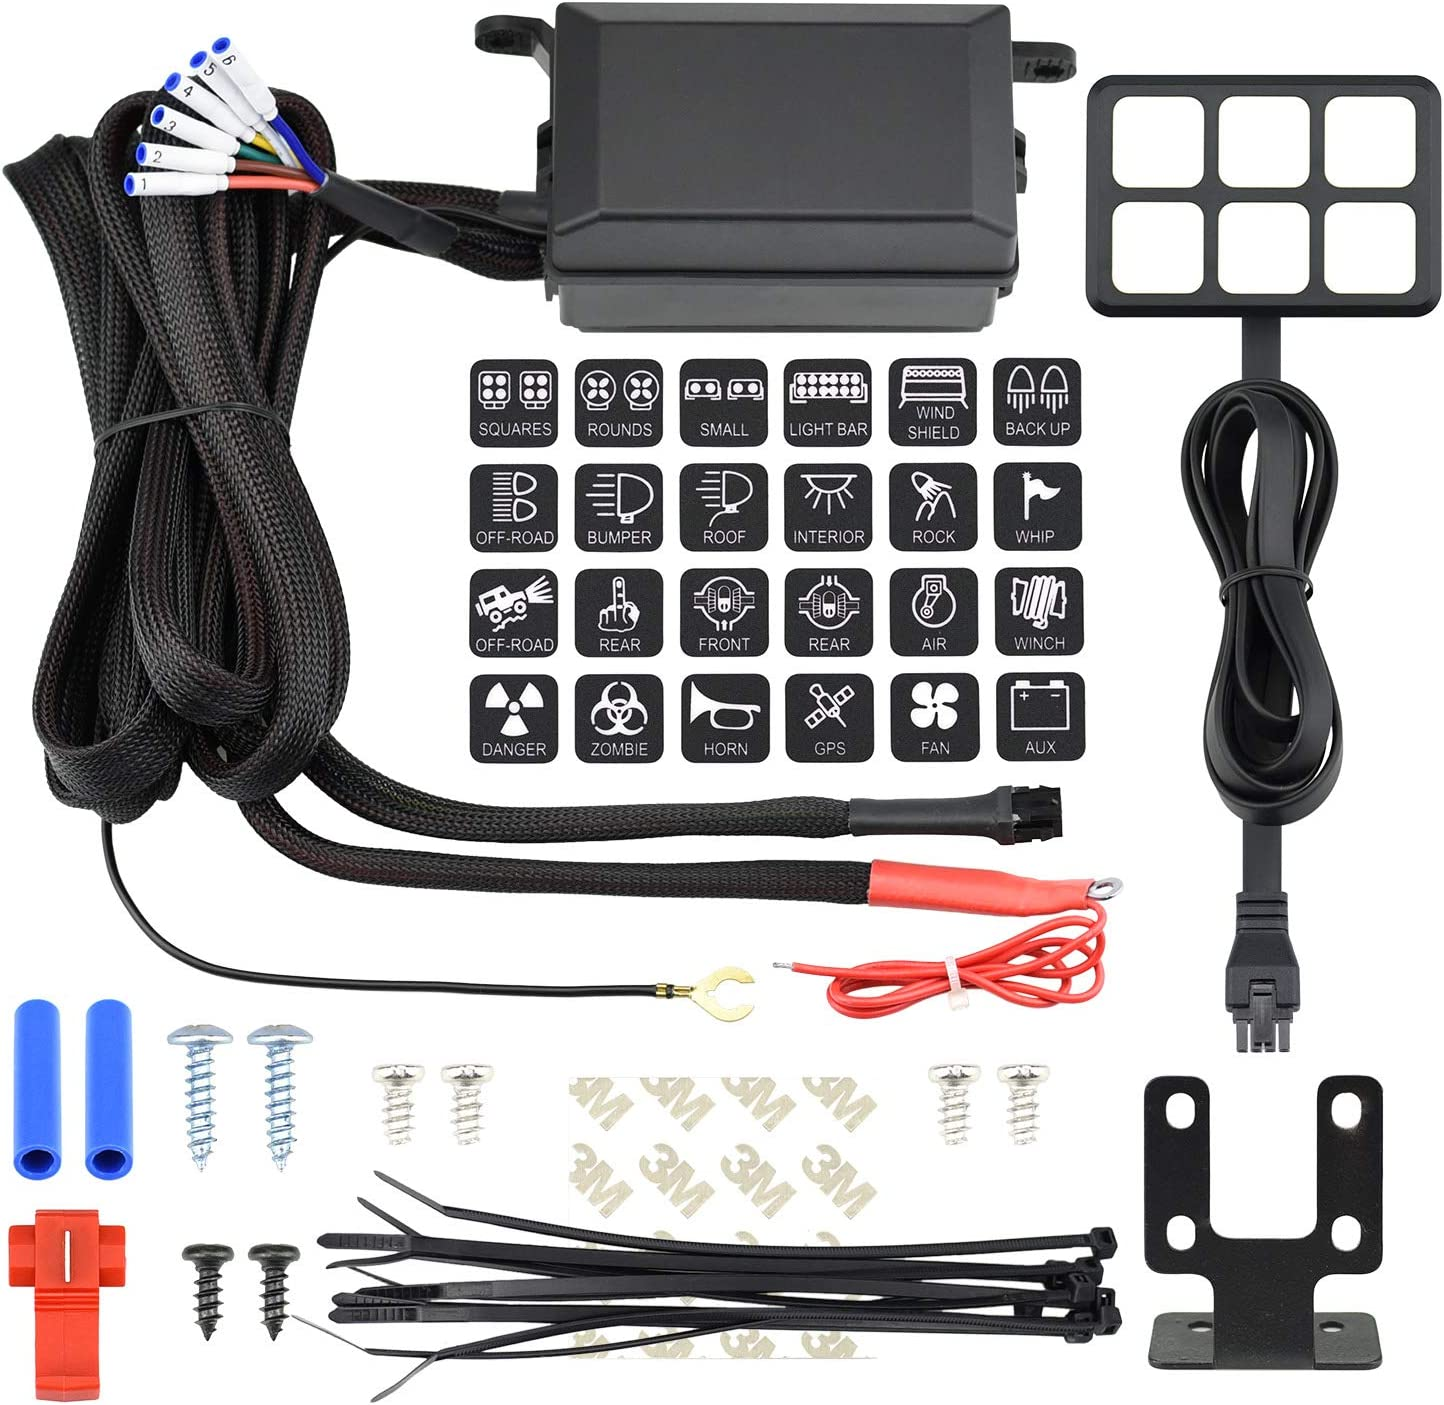 Amazon.com: Cllena Universal 6 Gang ON/Off Switch Panel with Relay System  Fuse Box Wiring Harness Assembly Kit for Car Auto Truck Camper Rv ATV UTV  Jeep Off-Road Marine Boat Accessories: AutomotiveAmazon.com